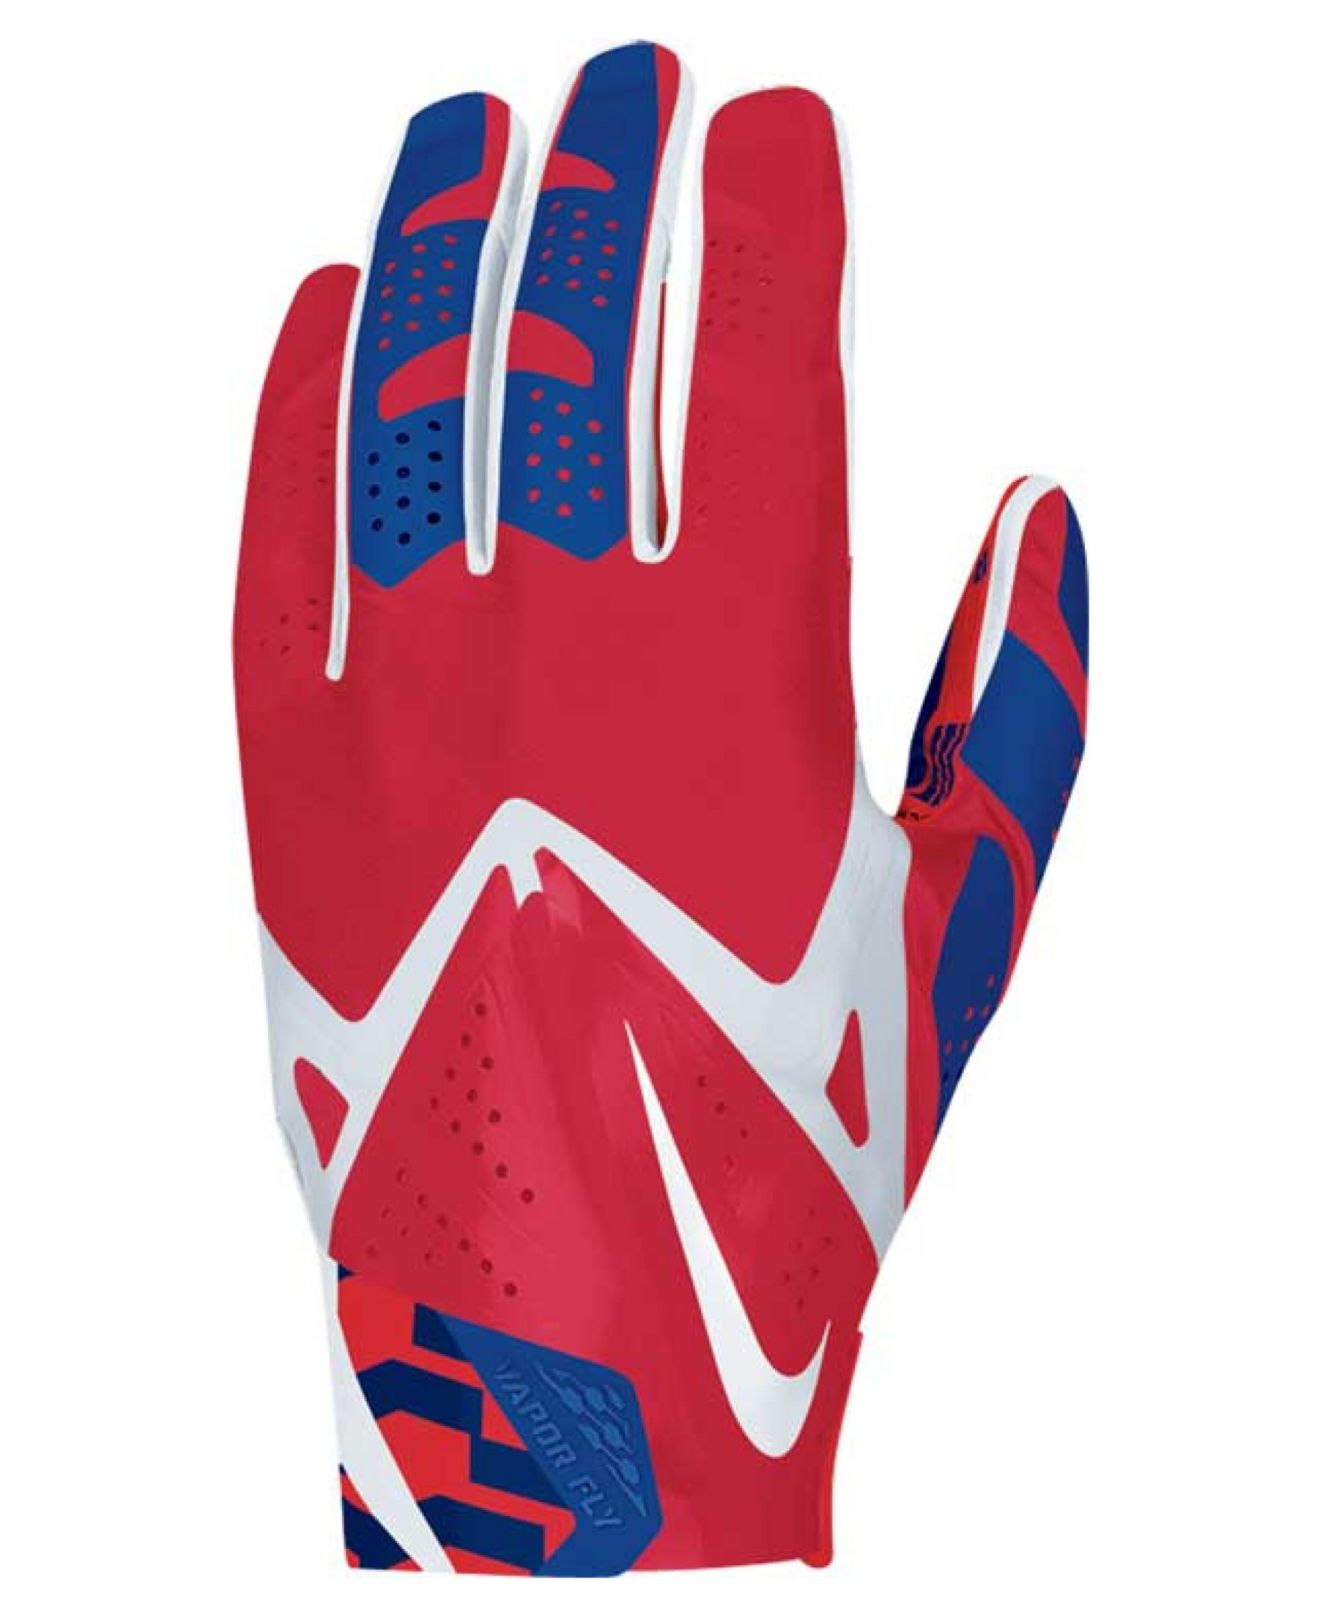 8f1626c94 Lyst - Nike New York Giants Vapor Fly Team Authentic Glove in Blue ...